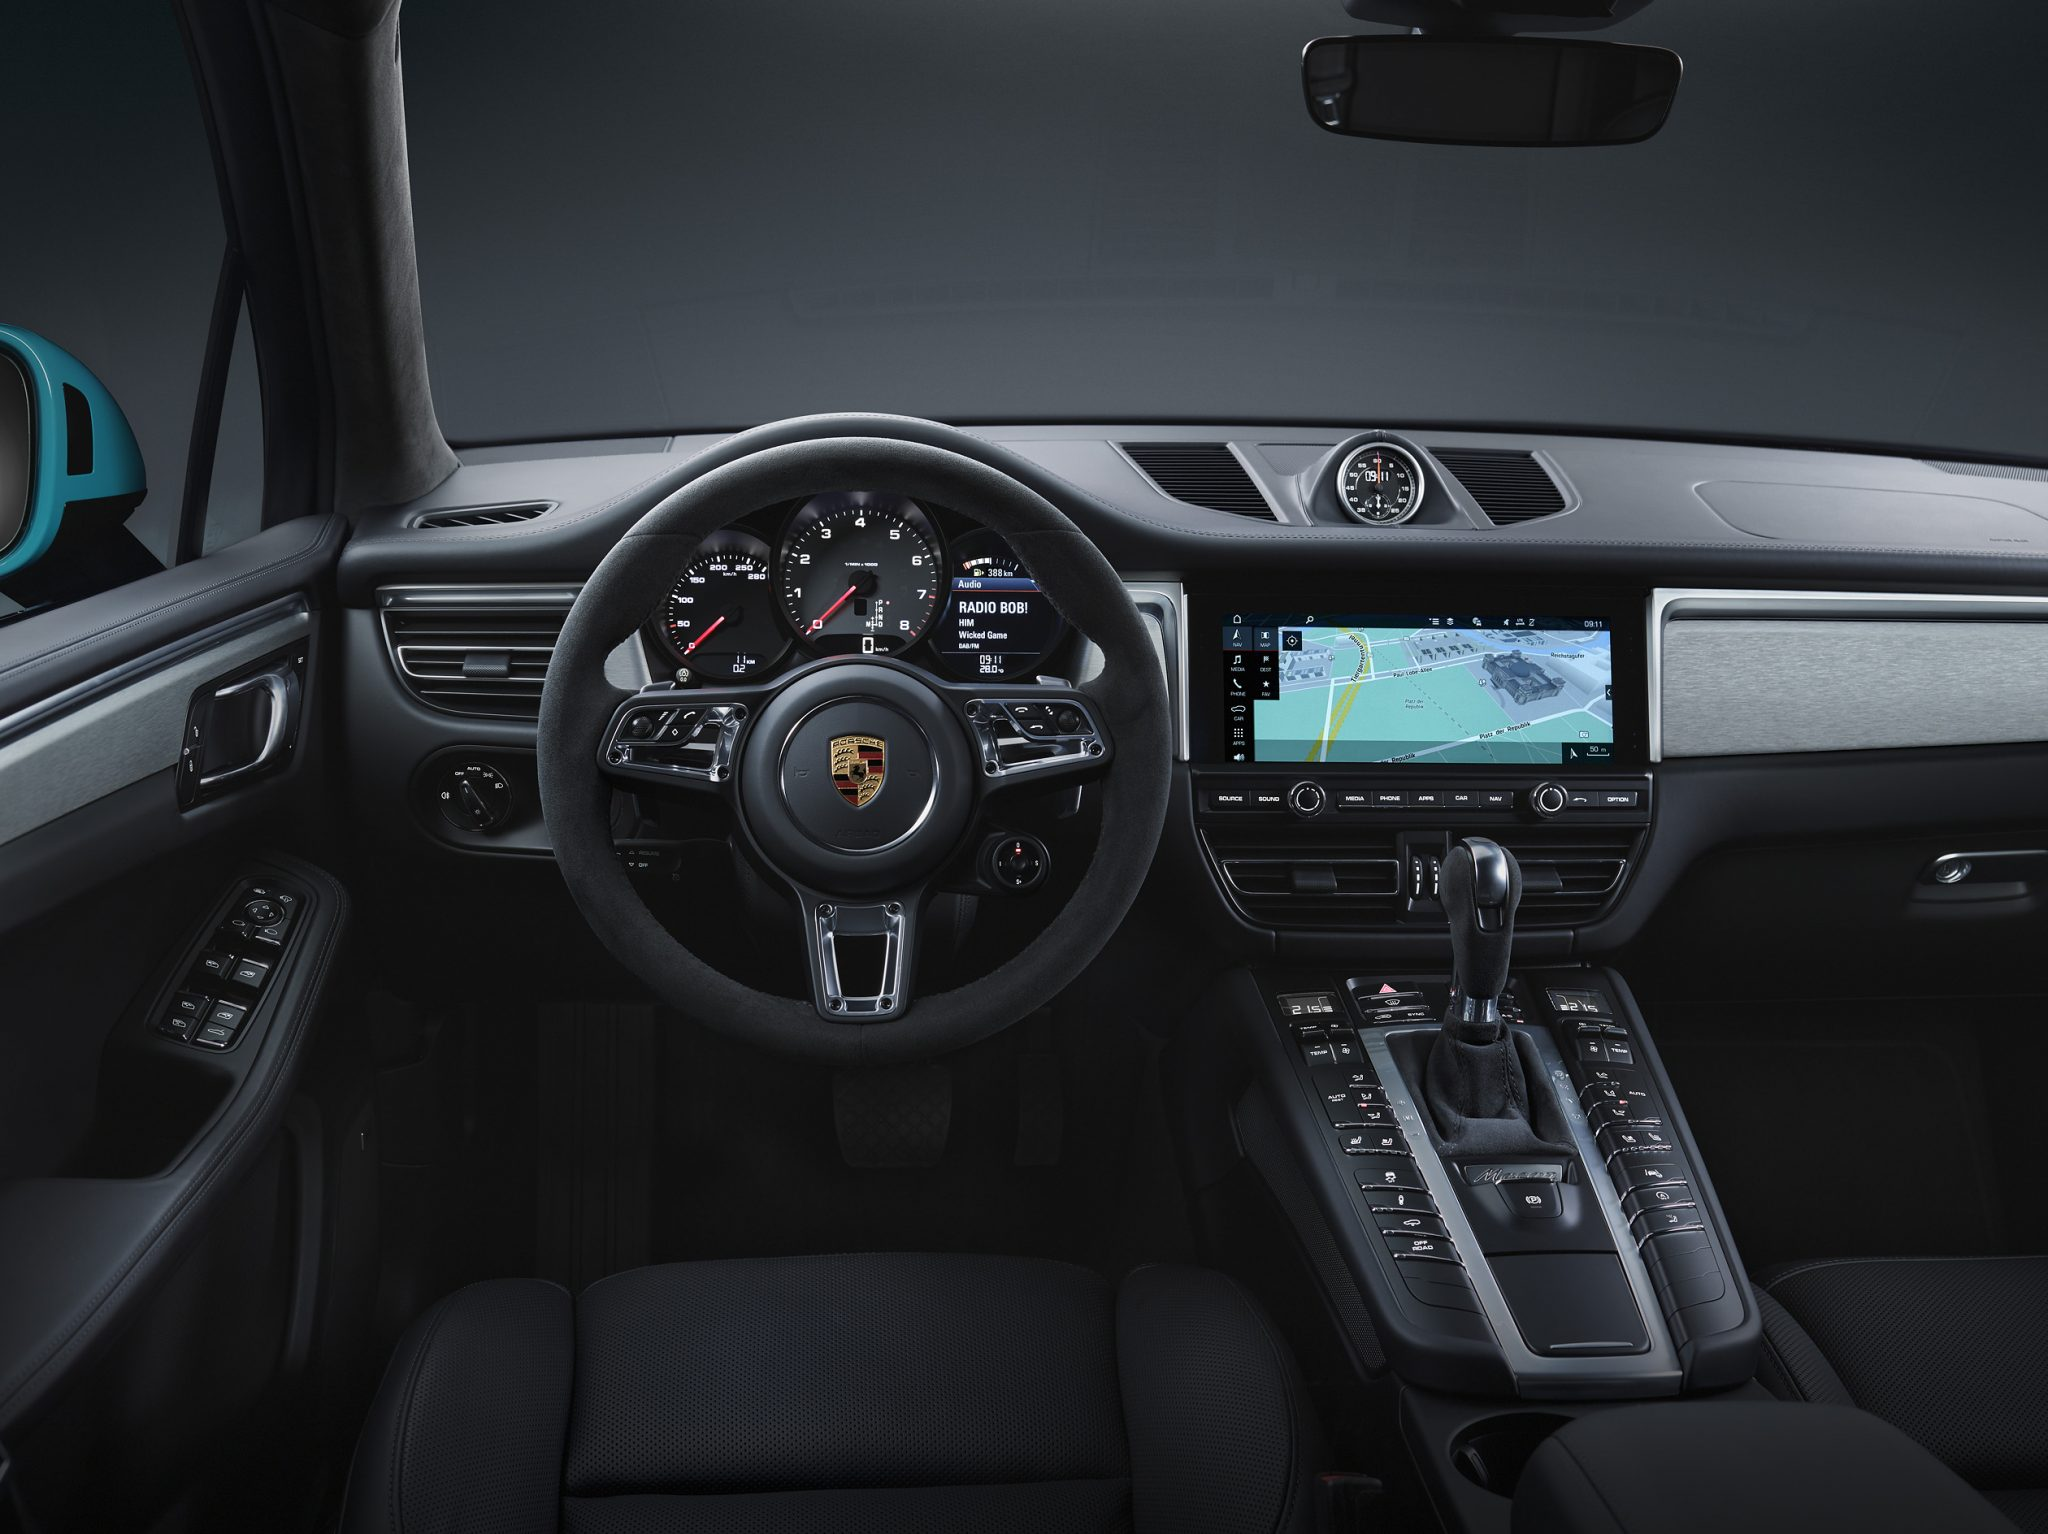 Porsche Macan: illustres Cockpit